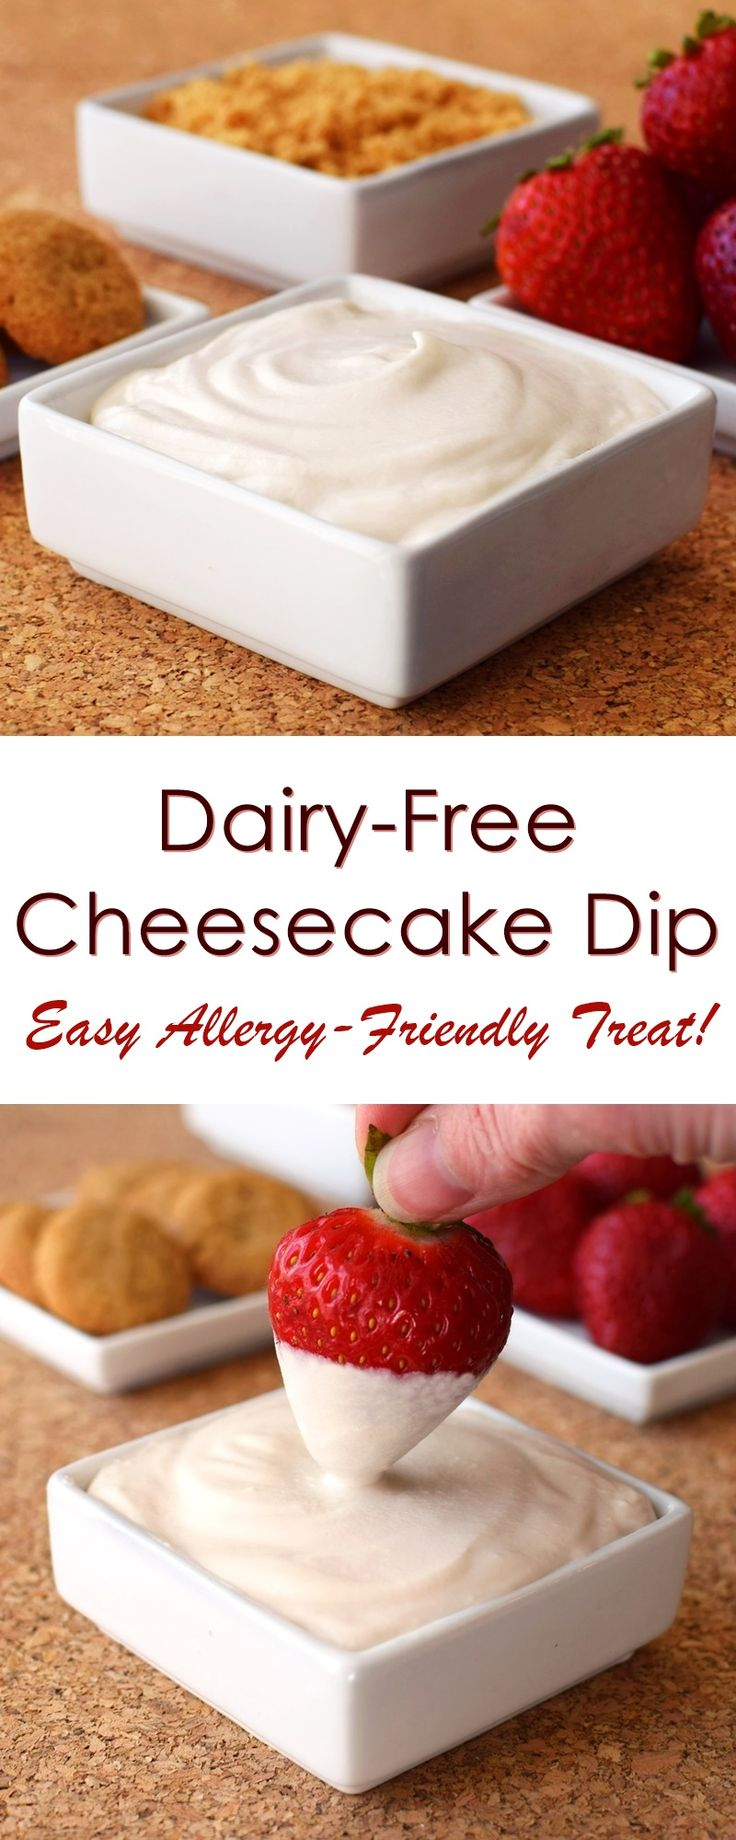 245 best allergy friendly lunch ideas for kids images on pinterest dairy free cheesecake dip forumfinder Choice Image